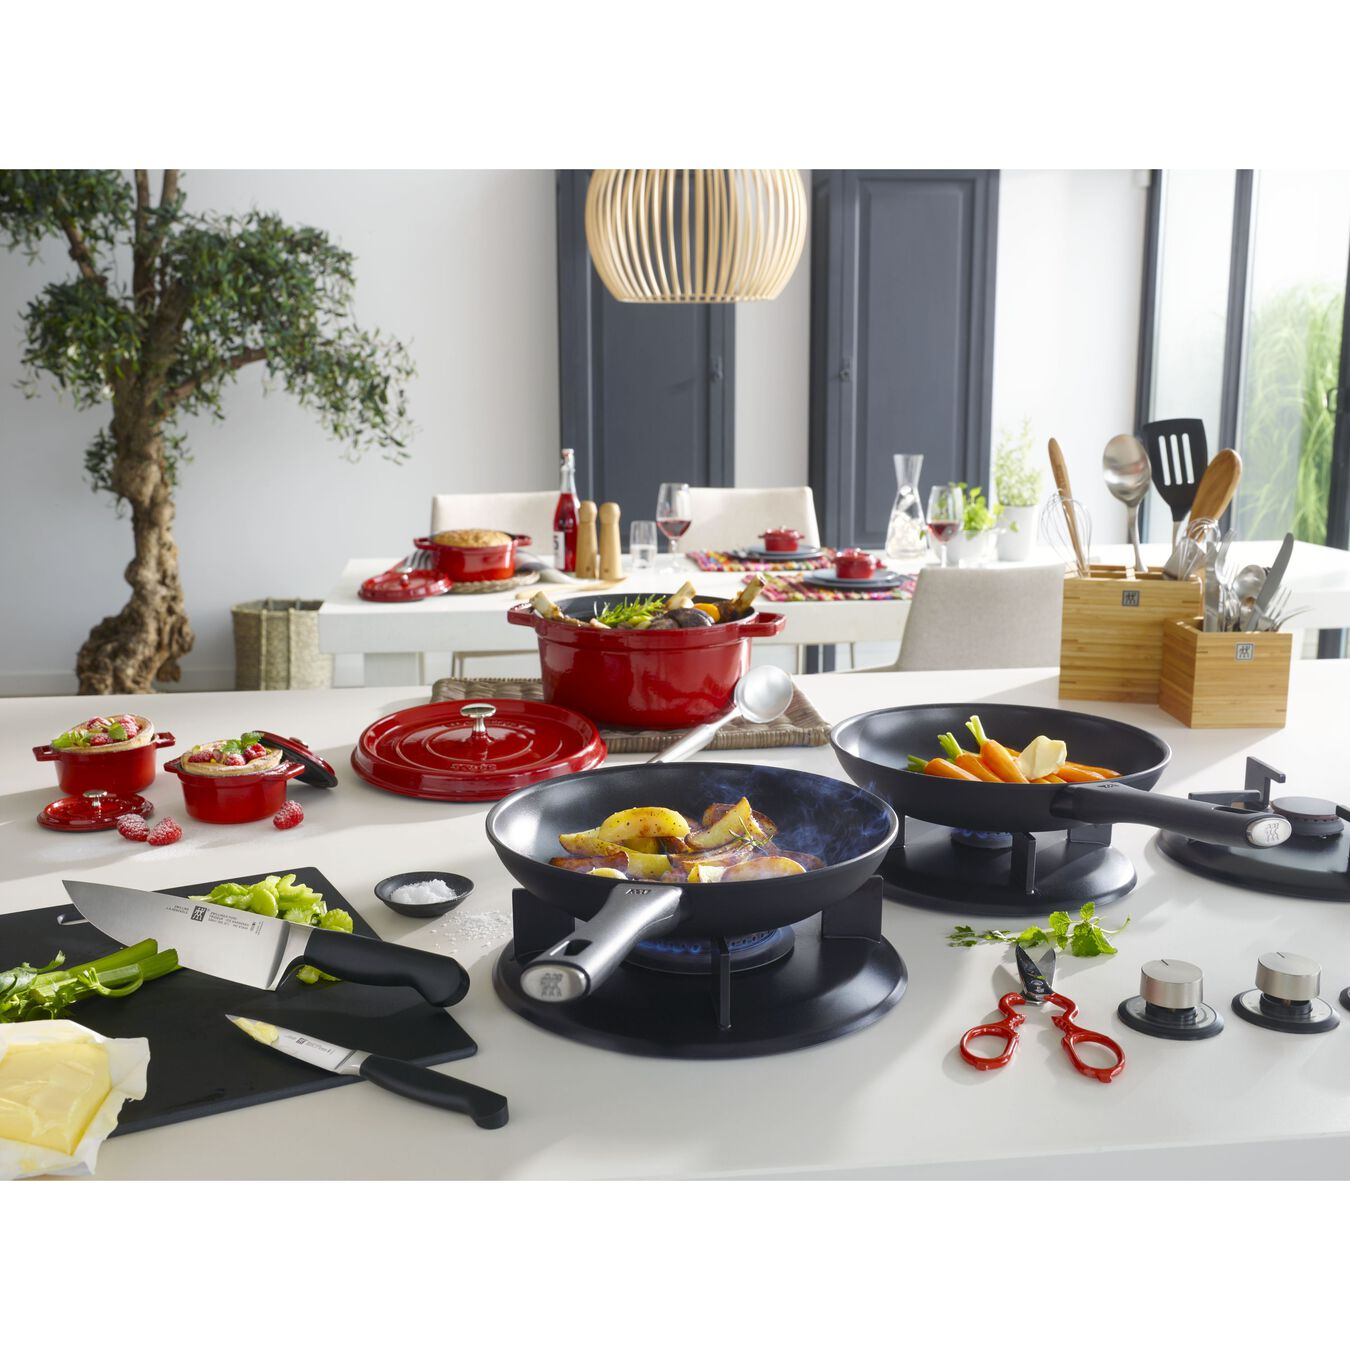 9.5-inch, Non-stick, Frying pan,,large 2